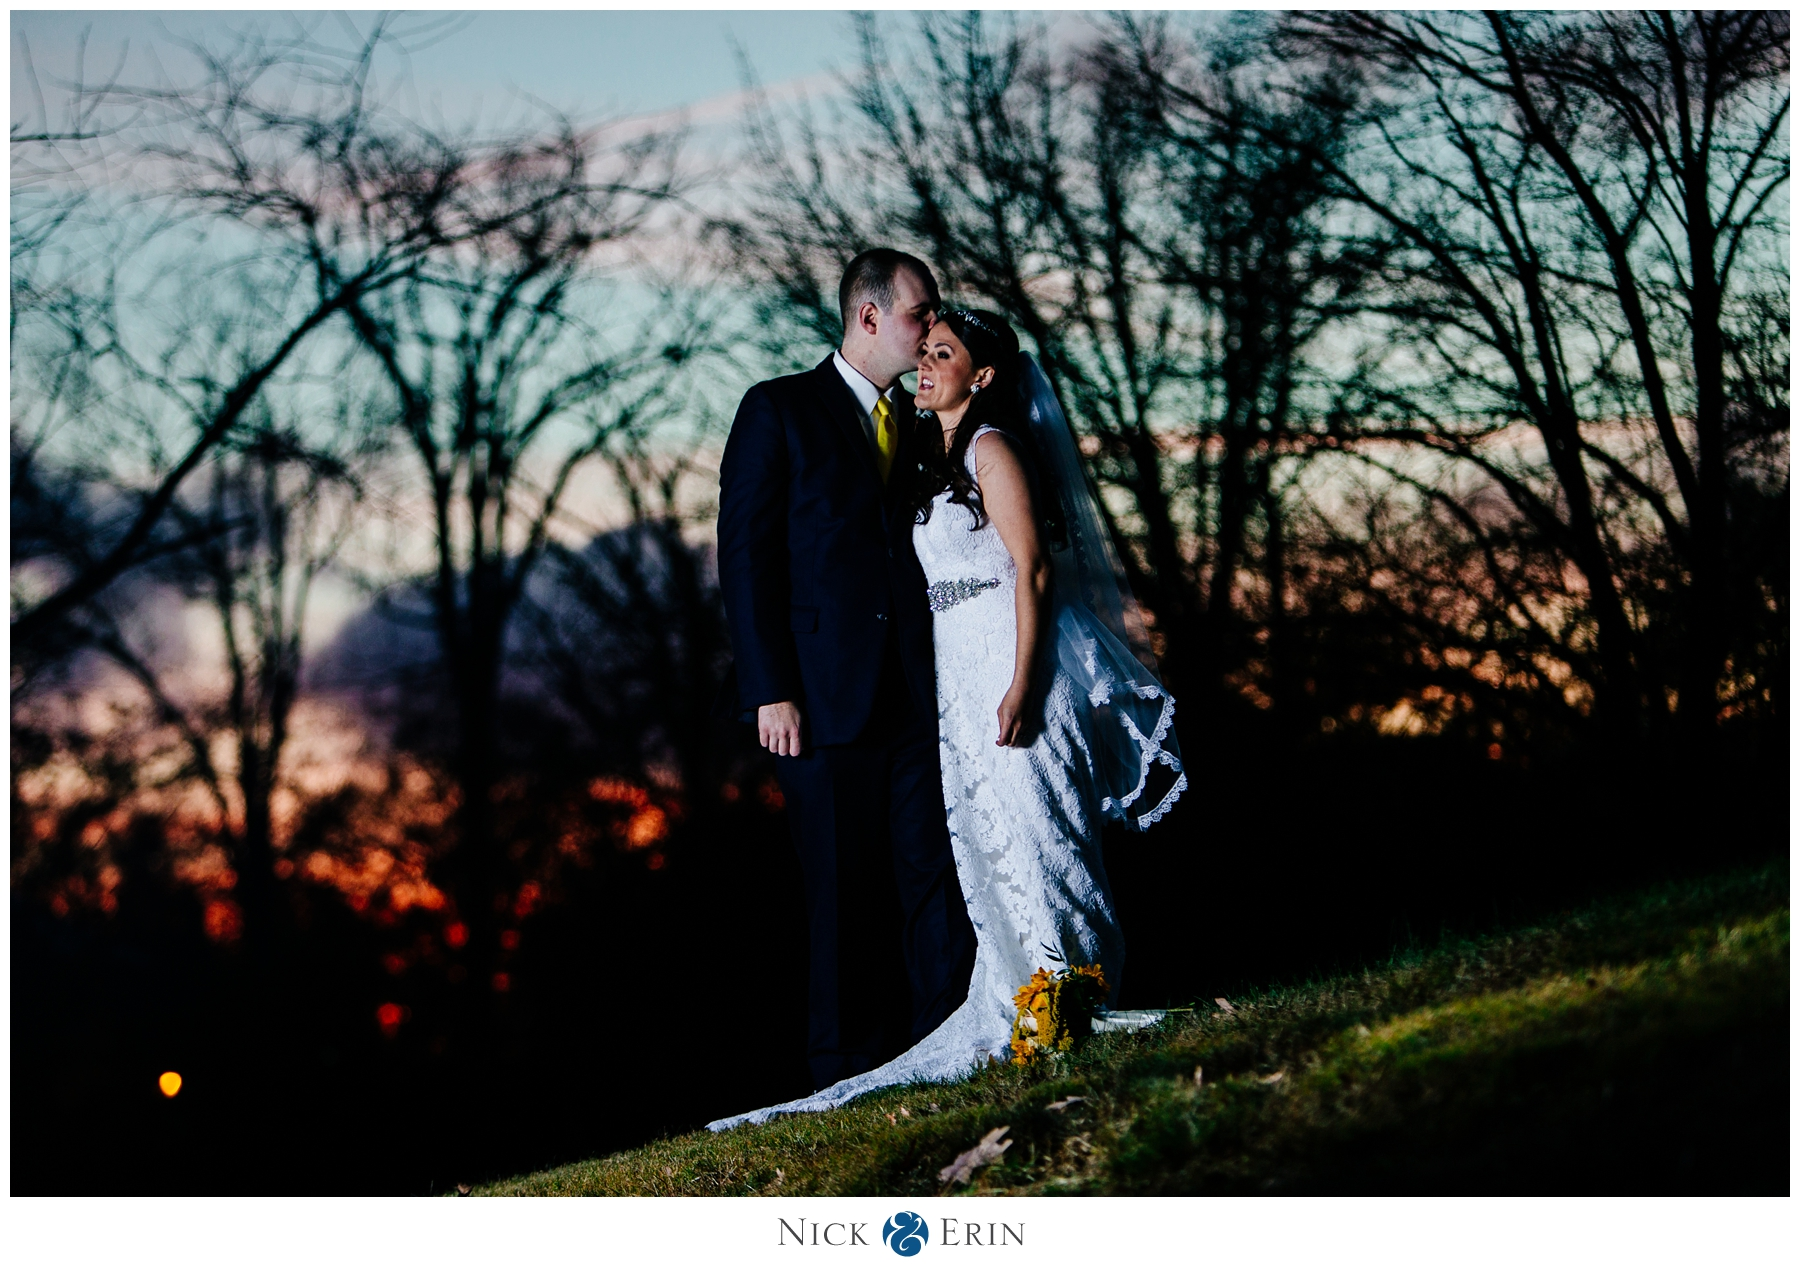 Donner_Photography_Fort Myer Wedding_Katie & Will_0006